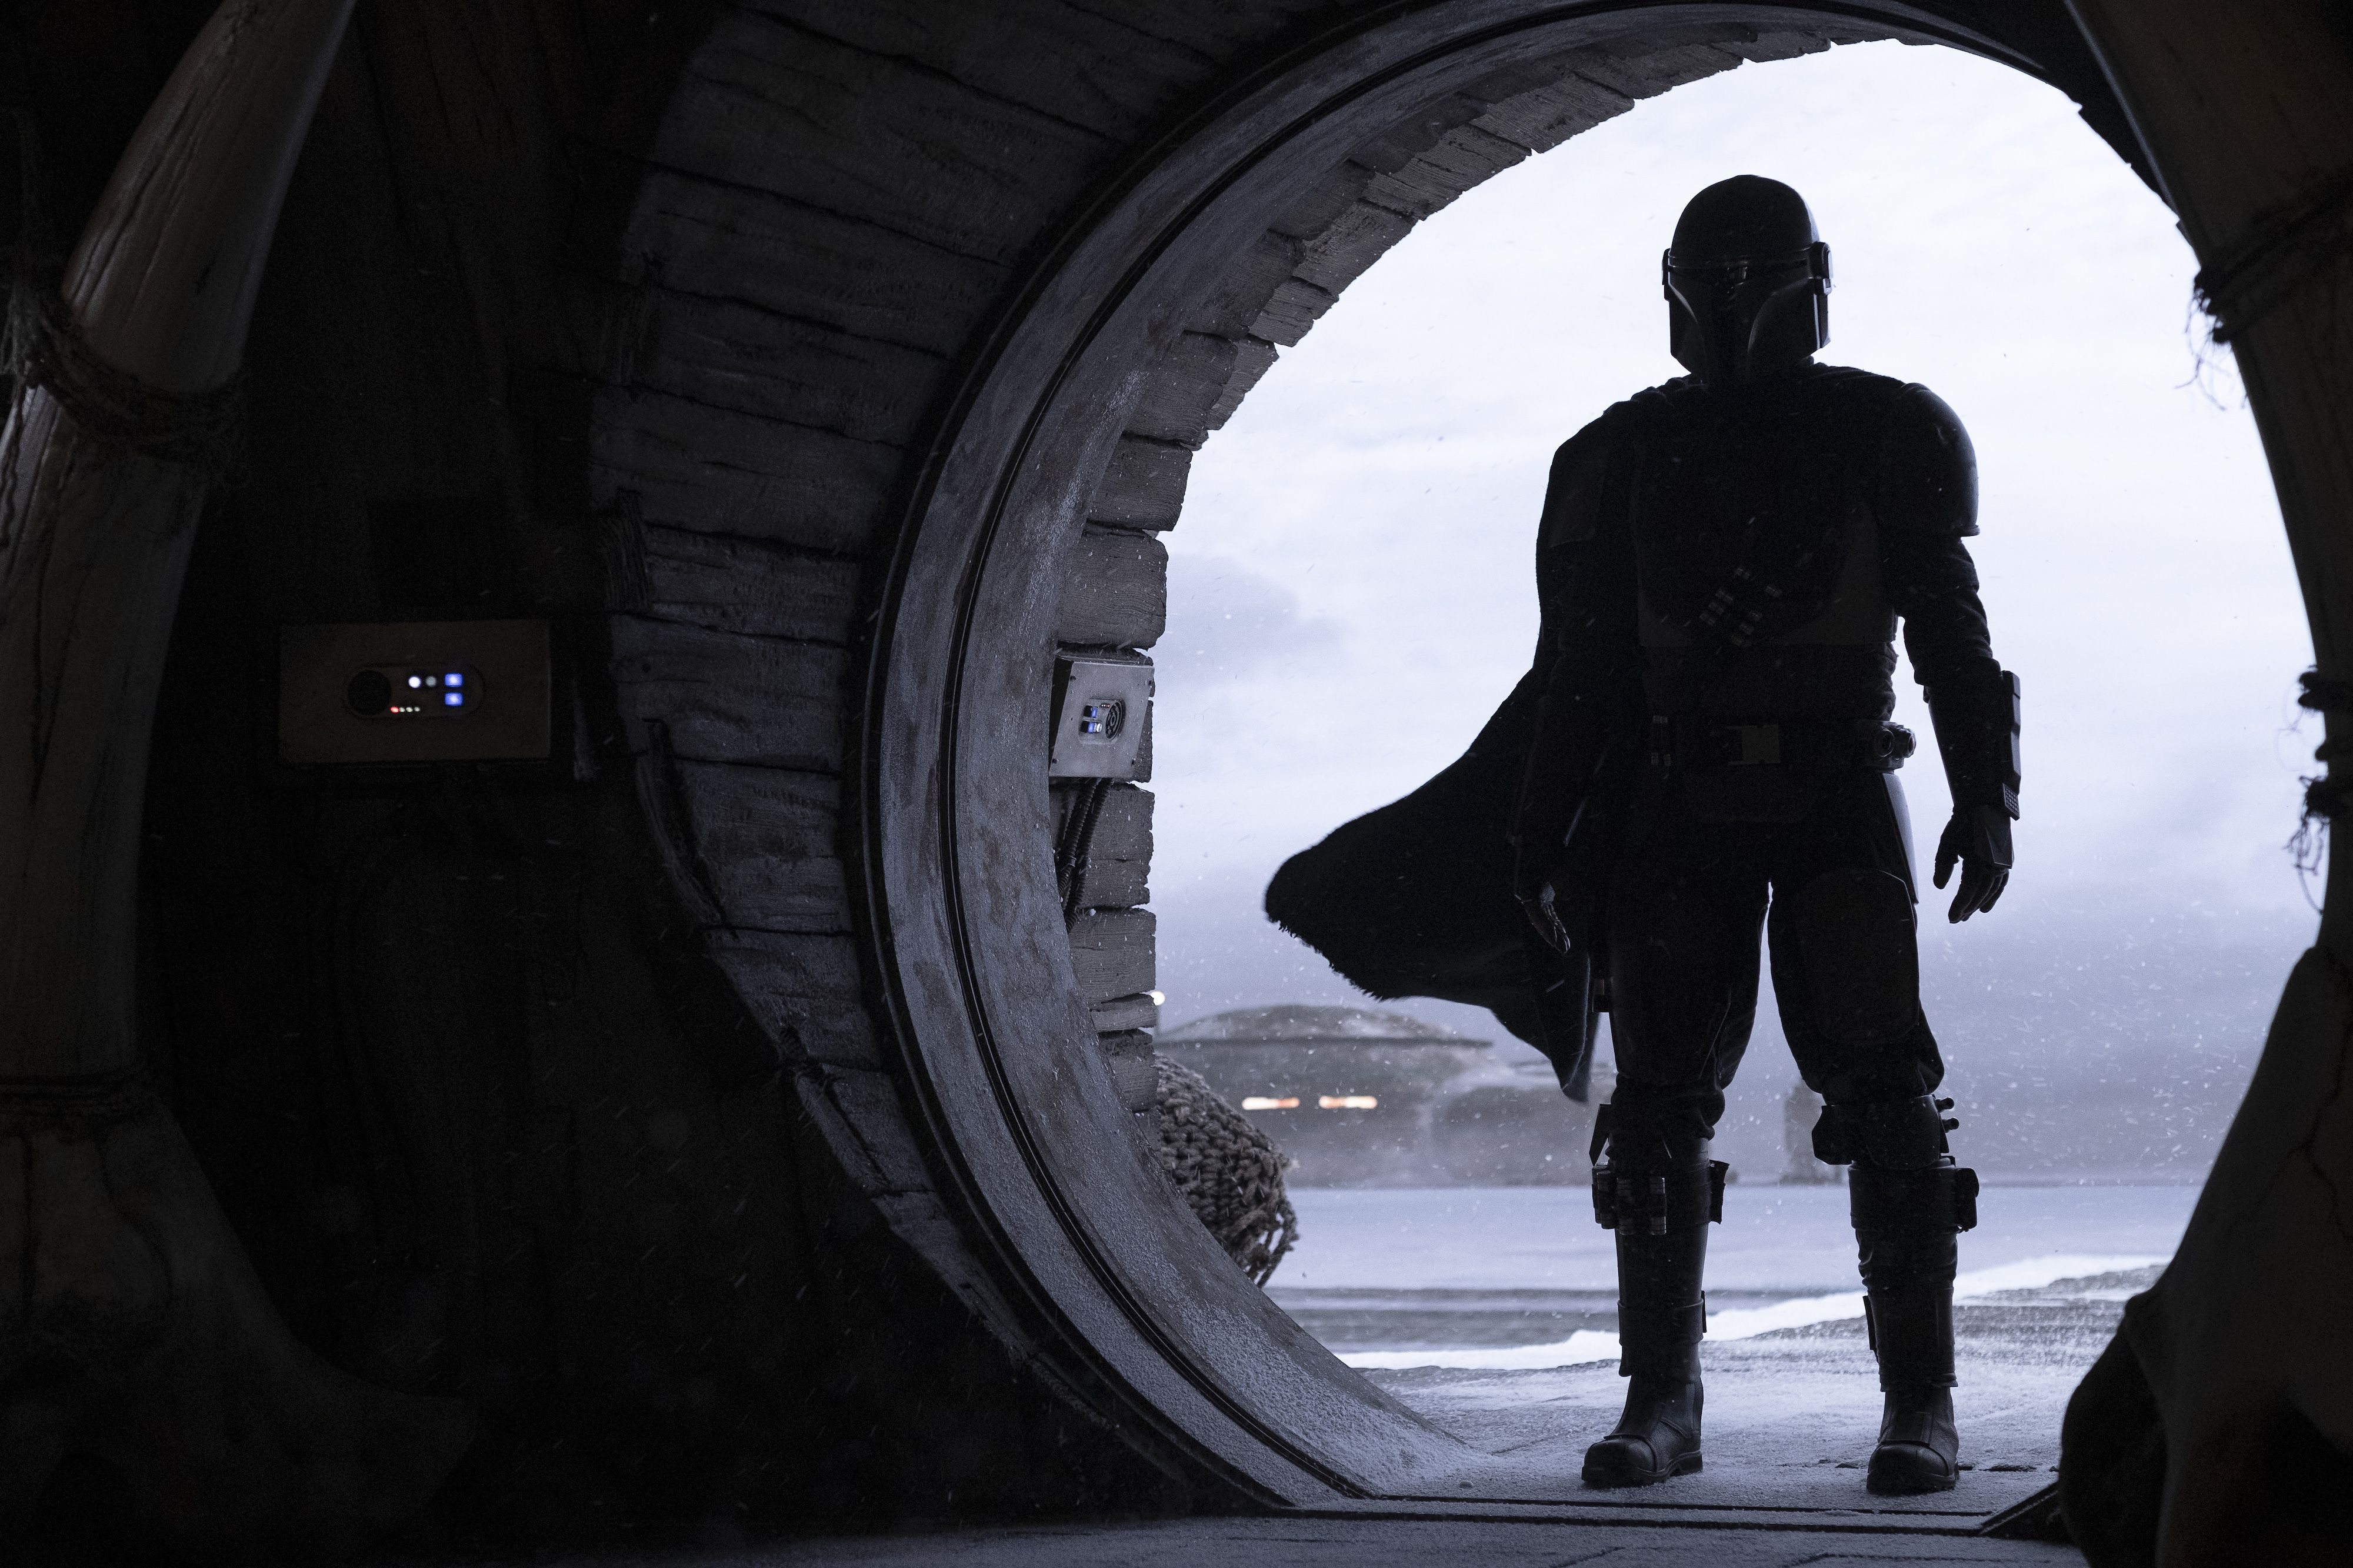 'The Mandalorian' Explores the Star Wars Universe in All the Right Ways